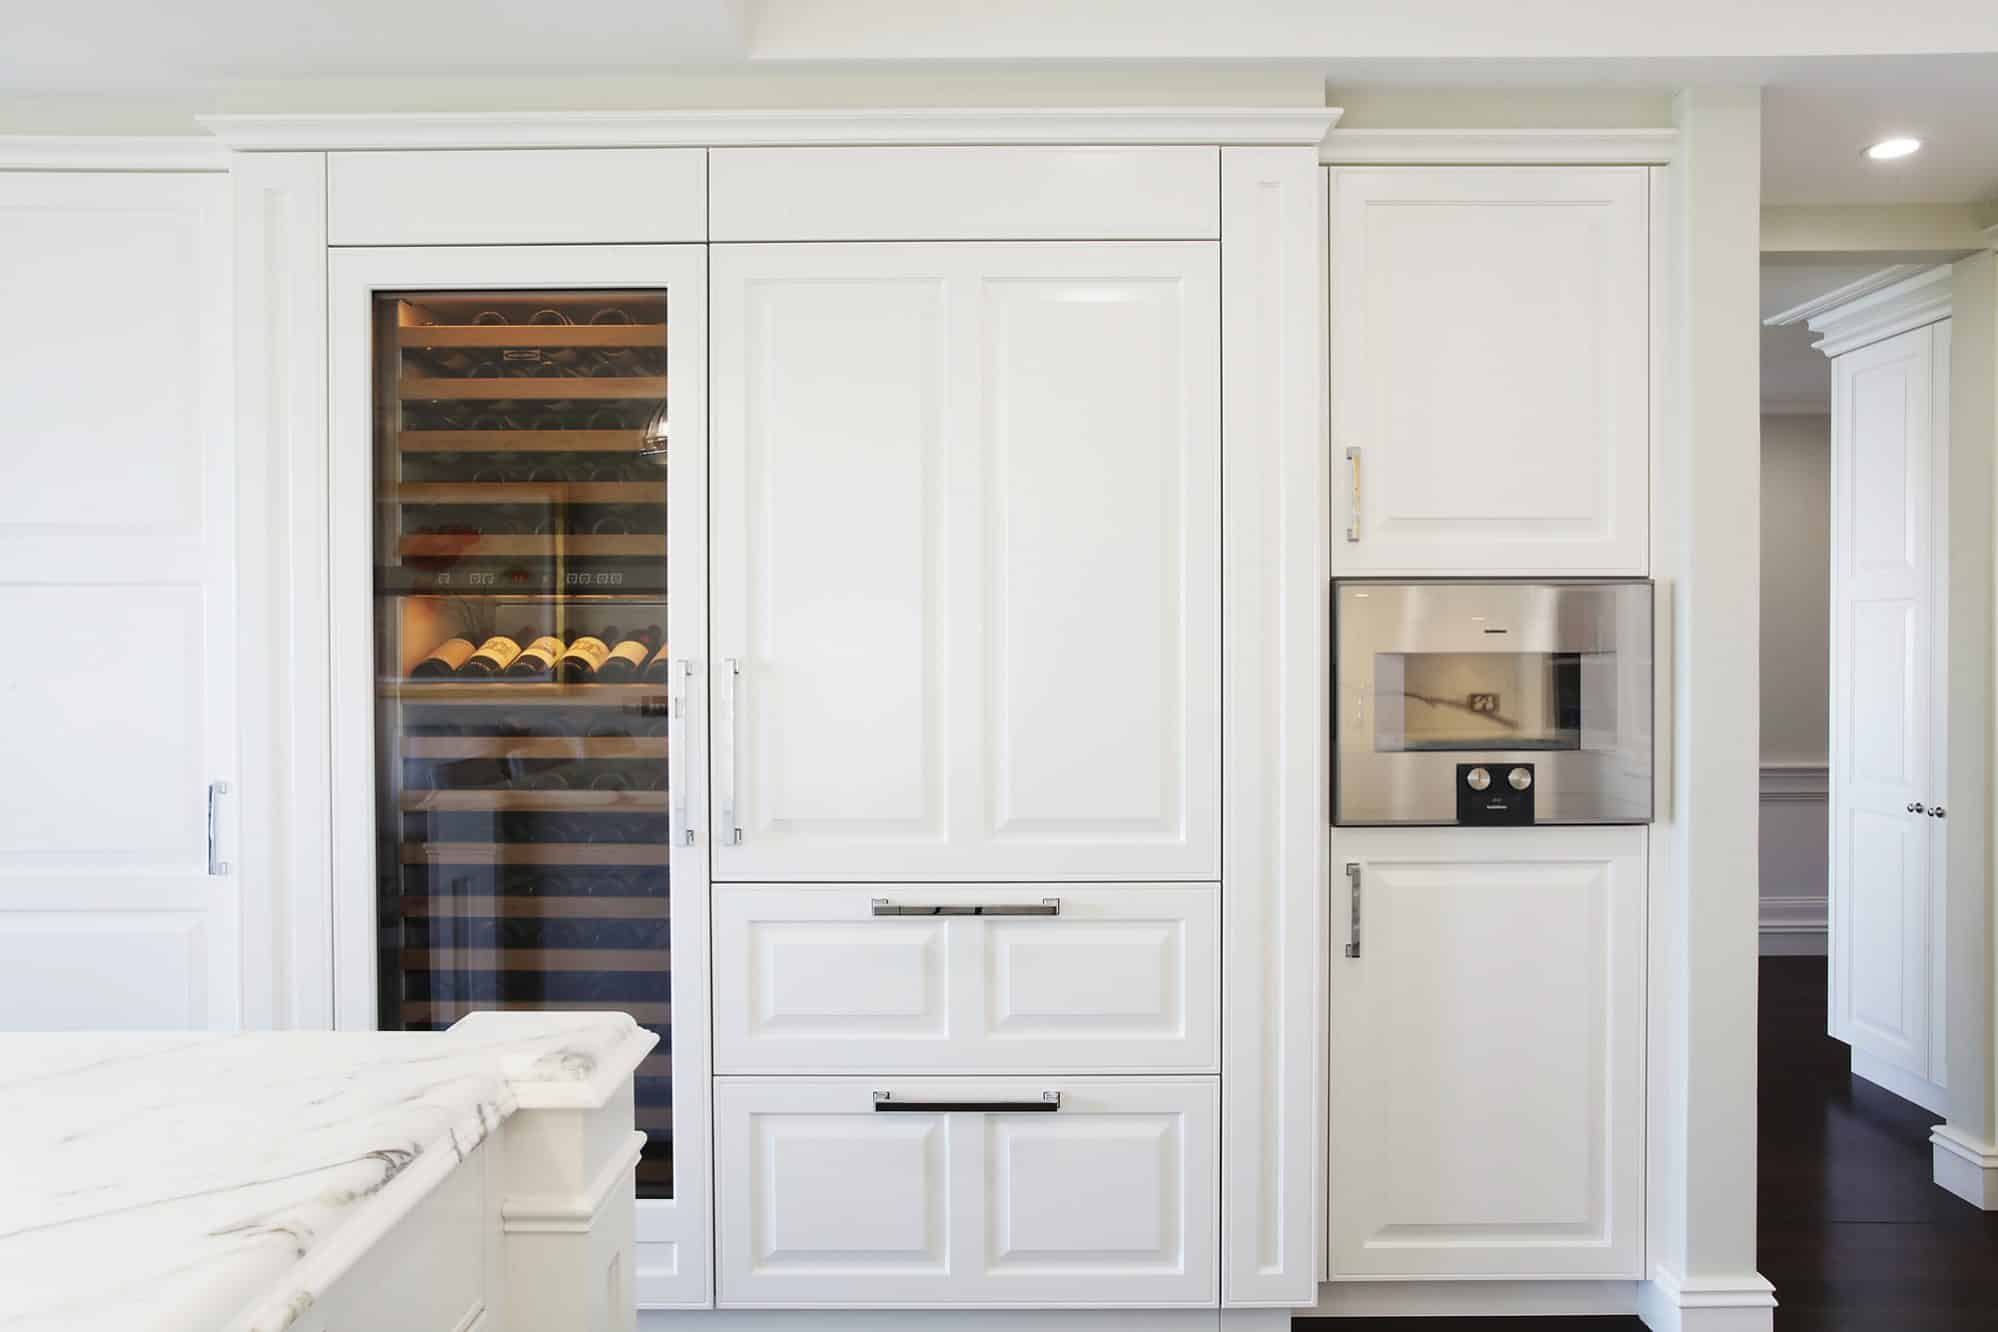 Sub-Zero and Gaggenau appliances used throughout this Hamptons kitchen